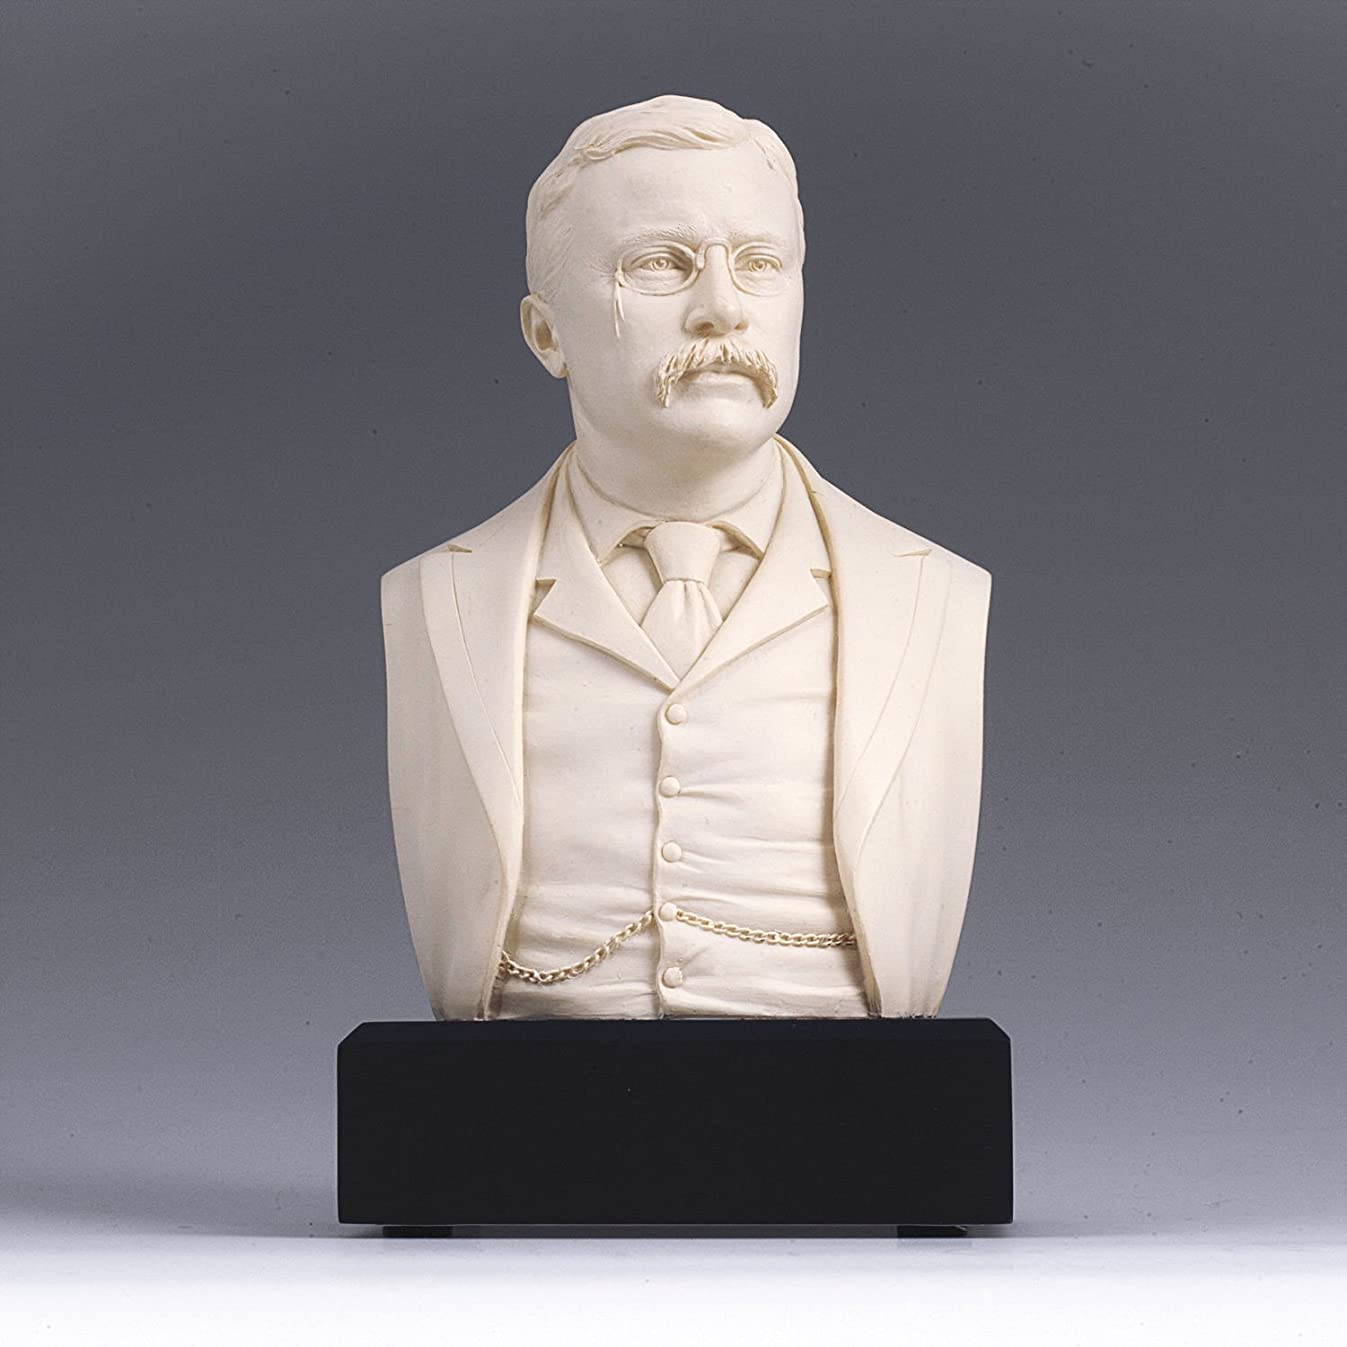 Amazon Exclusive ! - Theodore Roosevelt Bust - Great Americans Collection